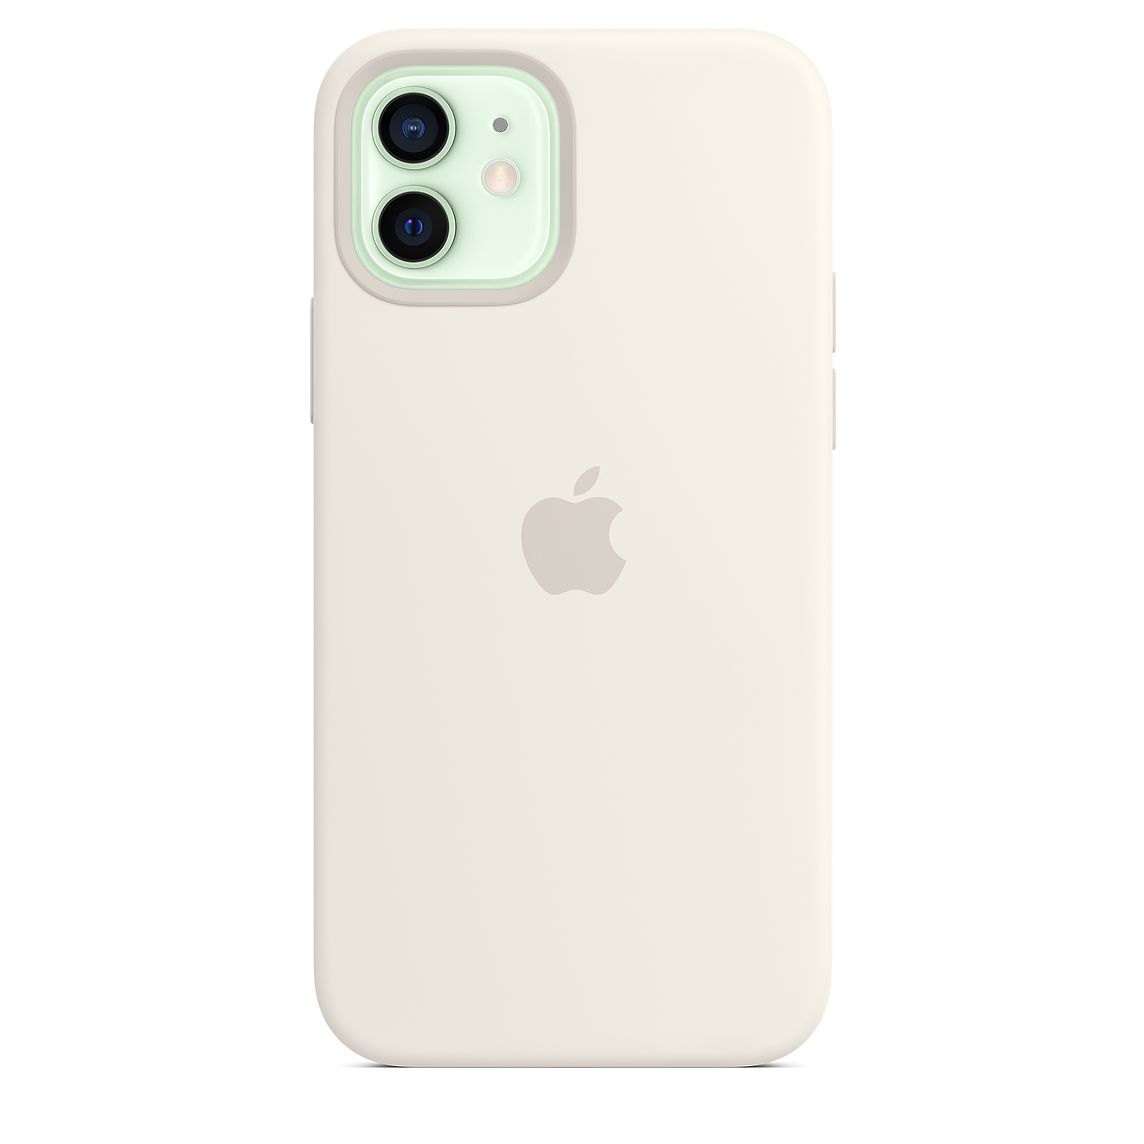 - iPhone 12 | 12 Pro Silicone Case with MagSafe / Blanco 2